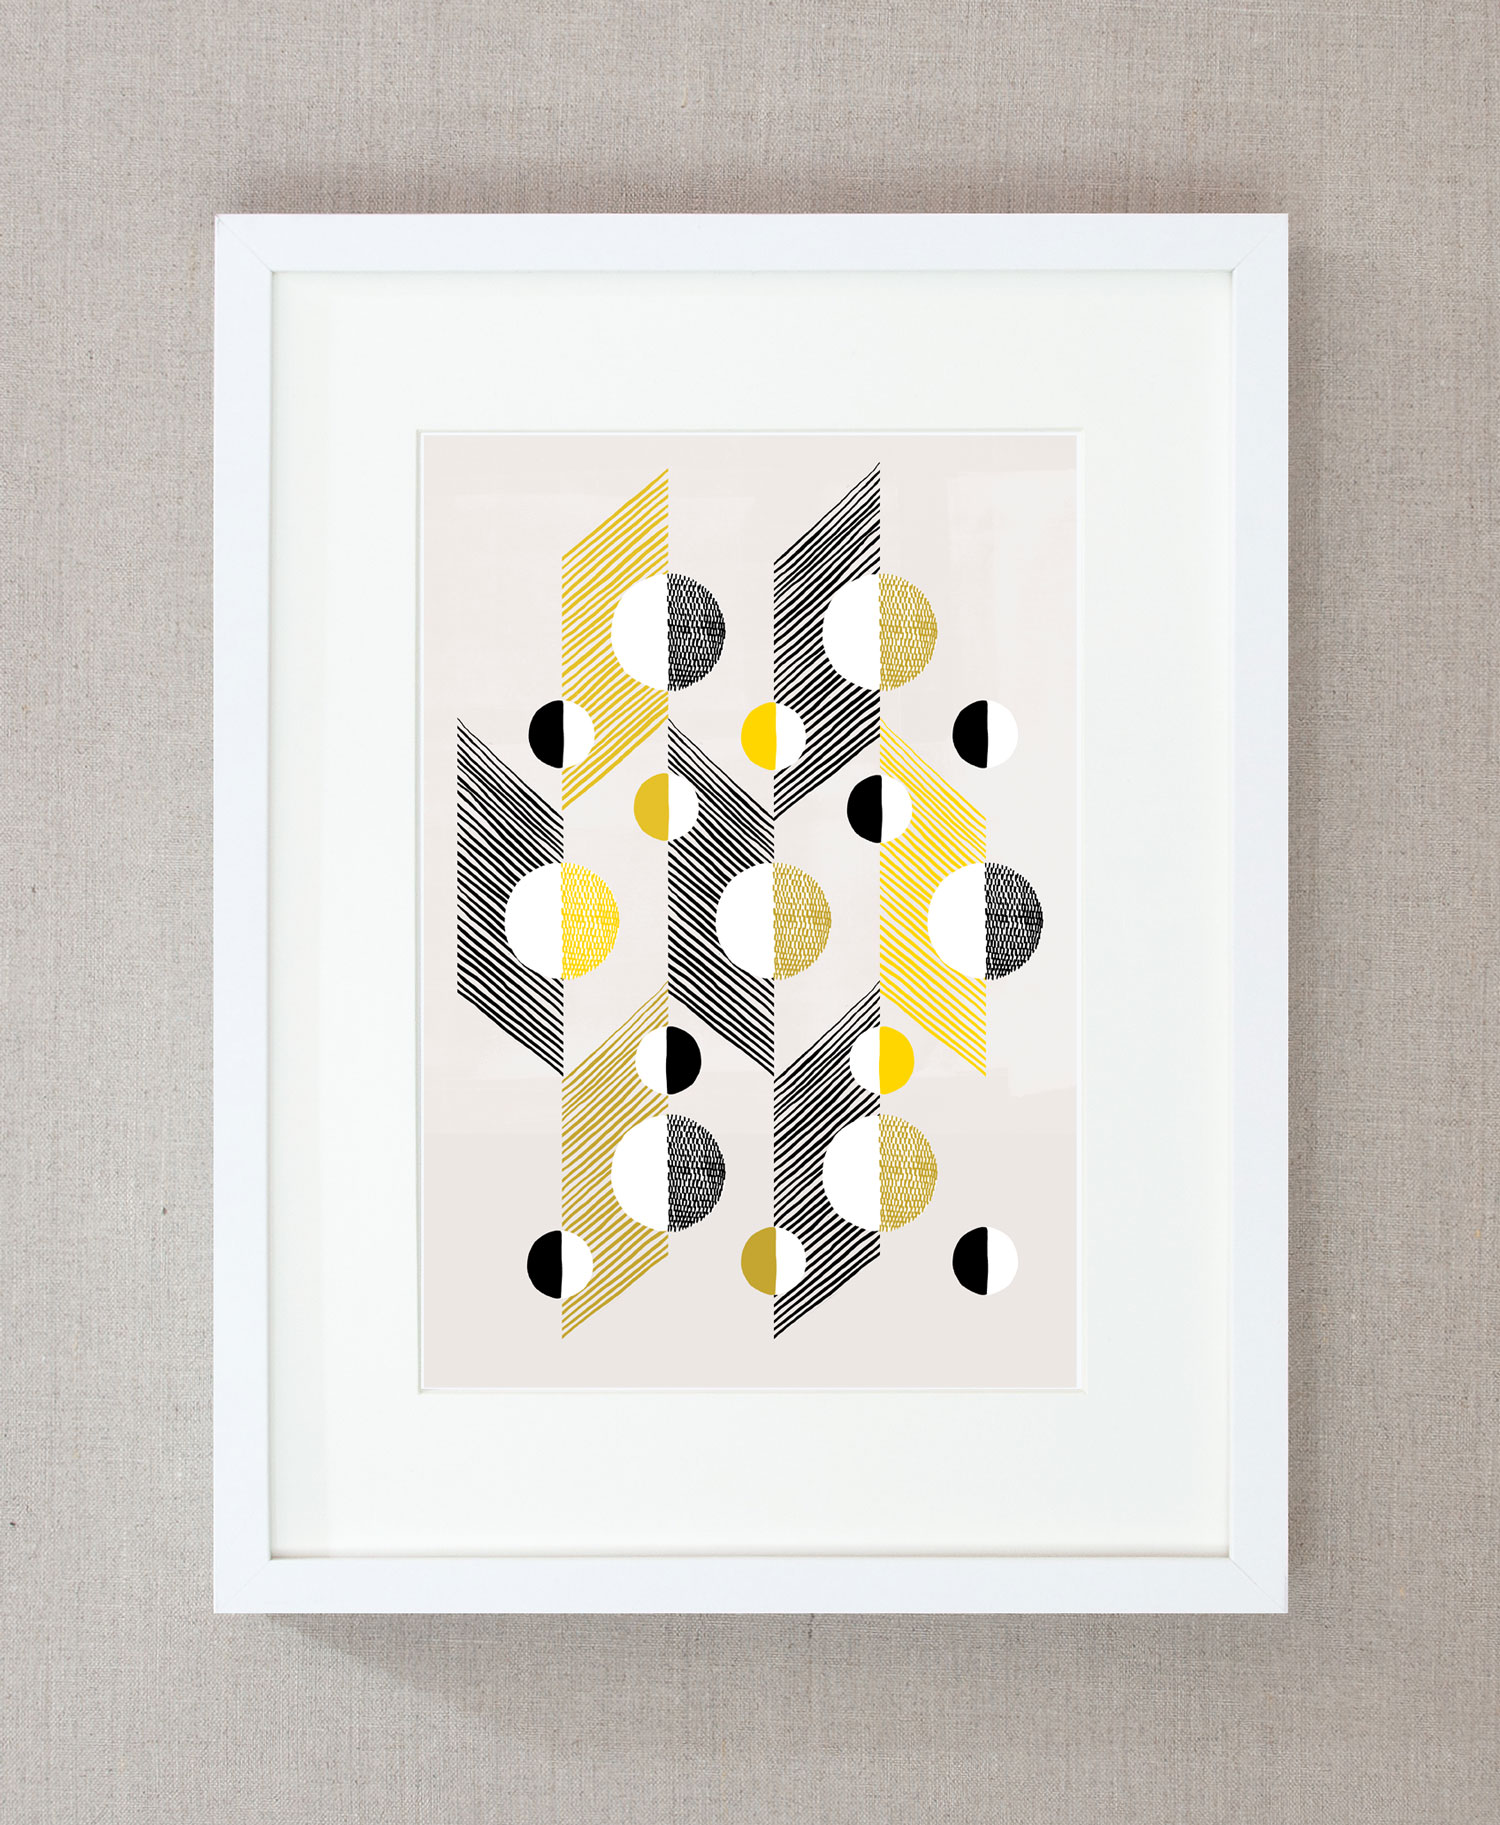 A selection of Gicleé Art Prints  available from  Brick + Mortar Creative